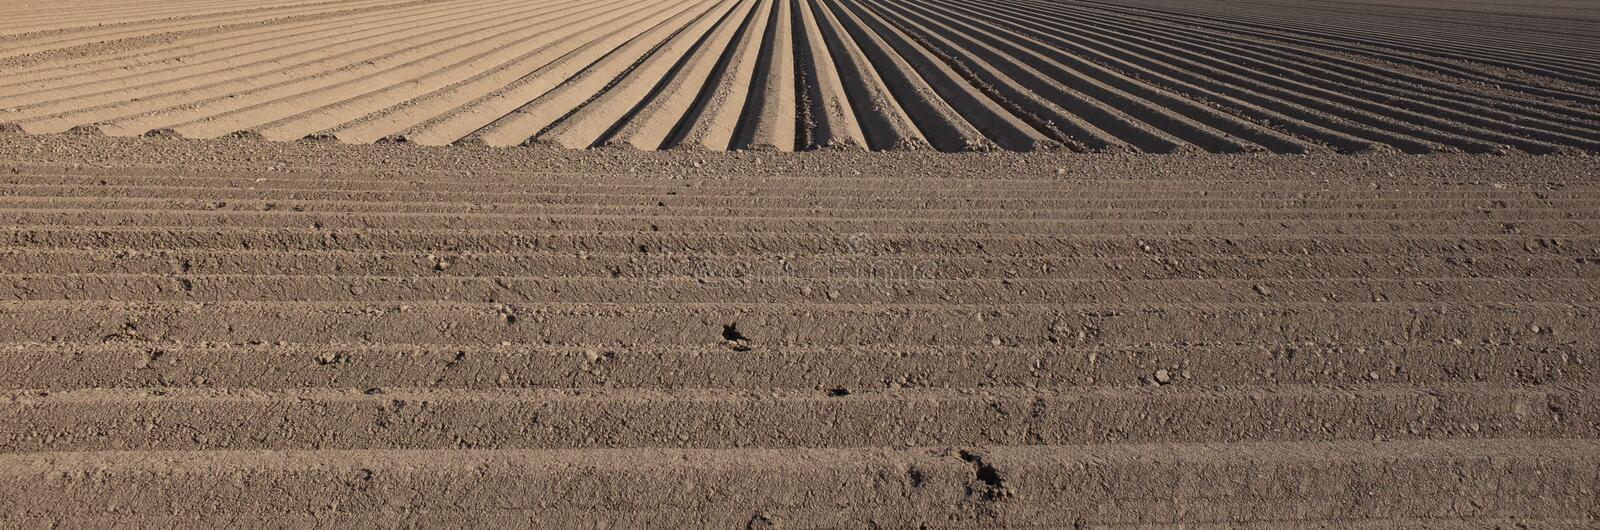 Plowed earth royalty free stock image